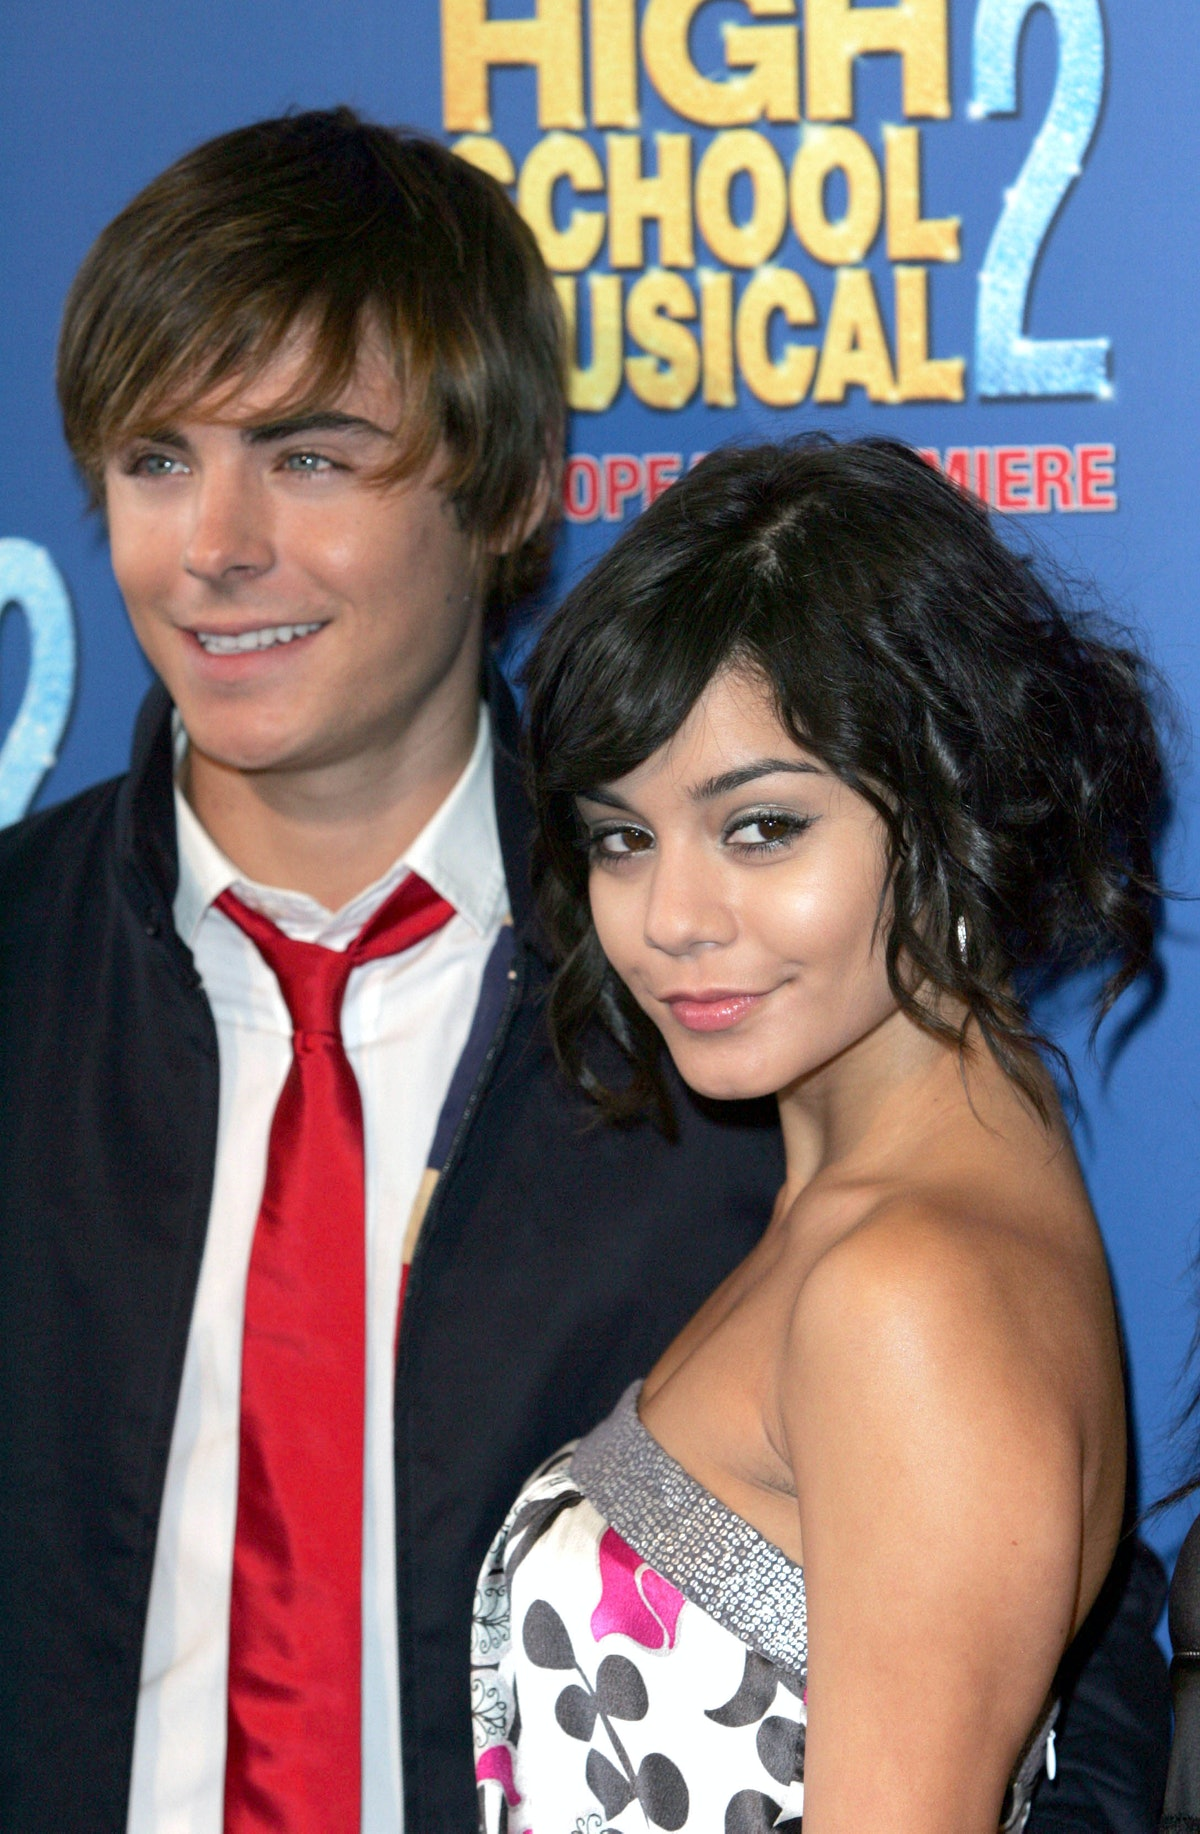 Zac Efron and Vanessa Hudgens attend the premiere of High School Musical 2.